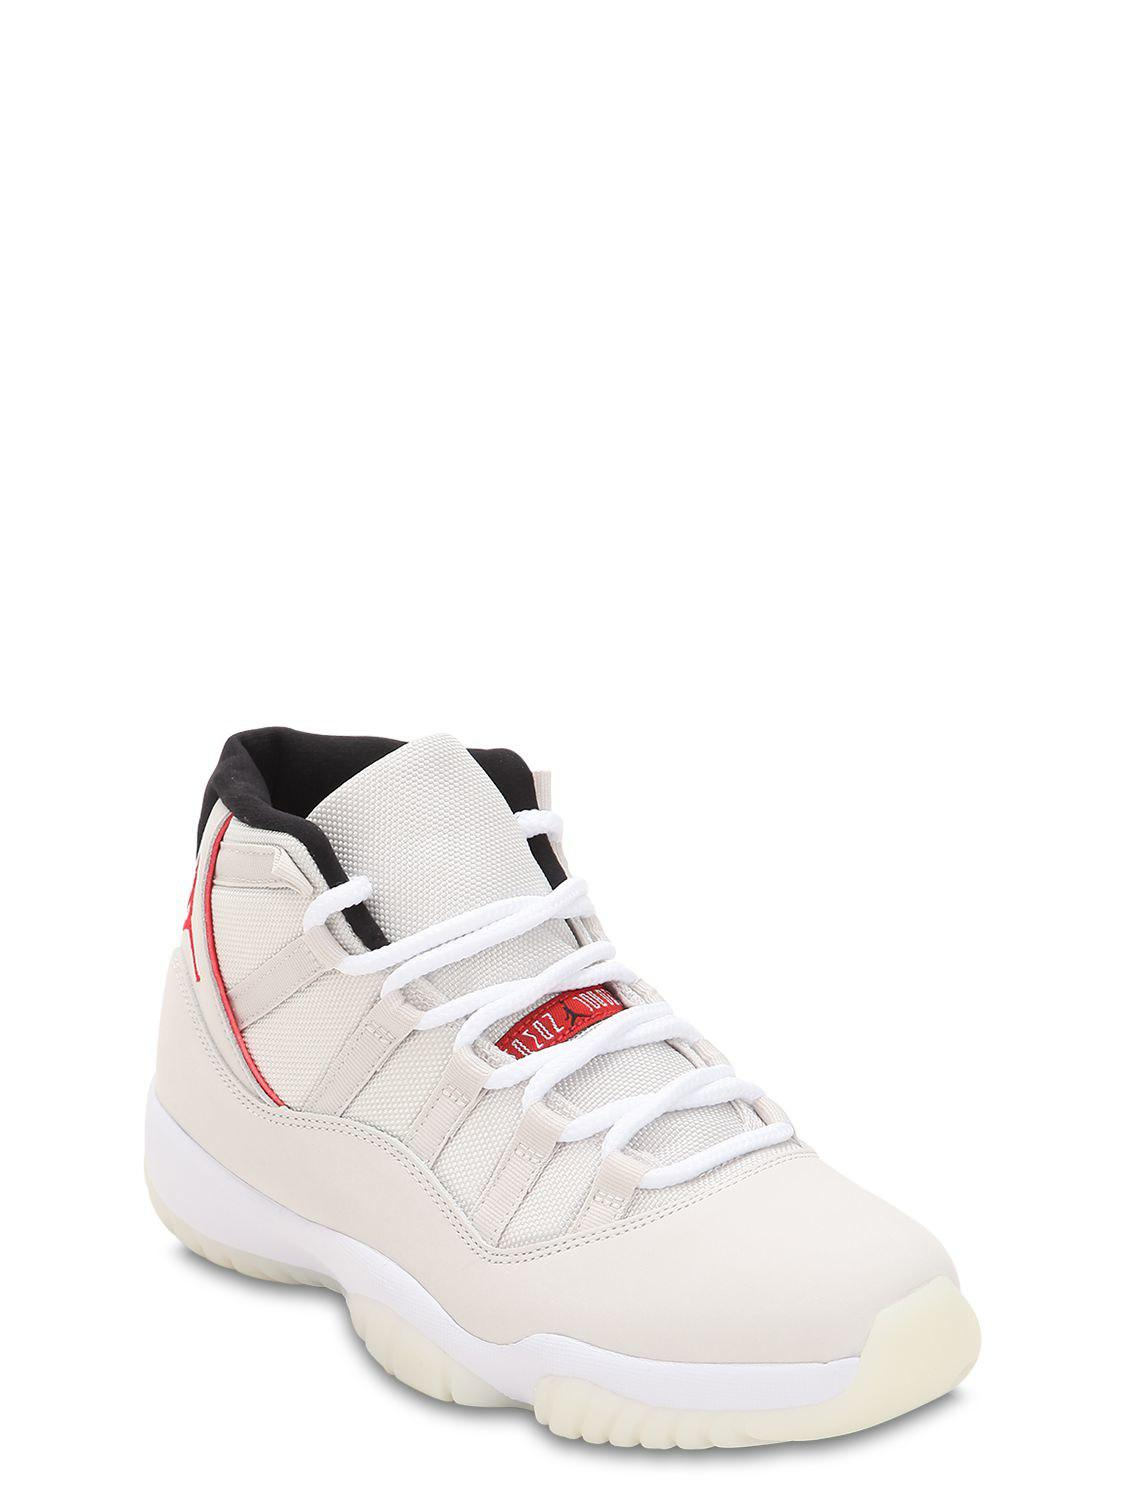 bcea83b729 Lyst - Nike Air Jordan 11 Retro Nrg Sneakers for Men